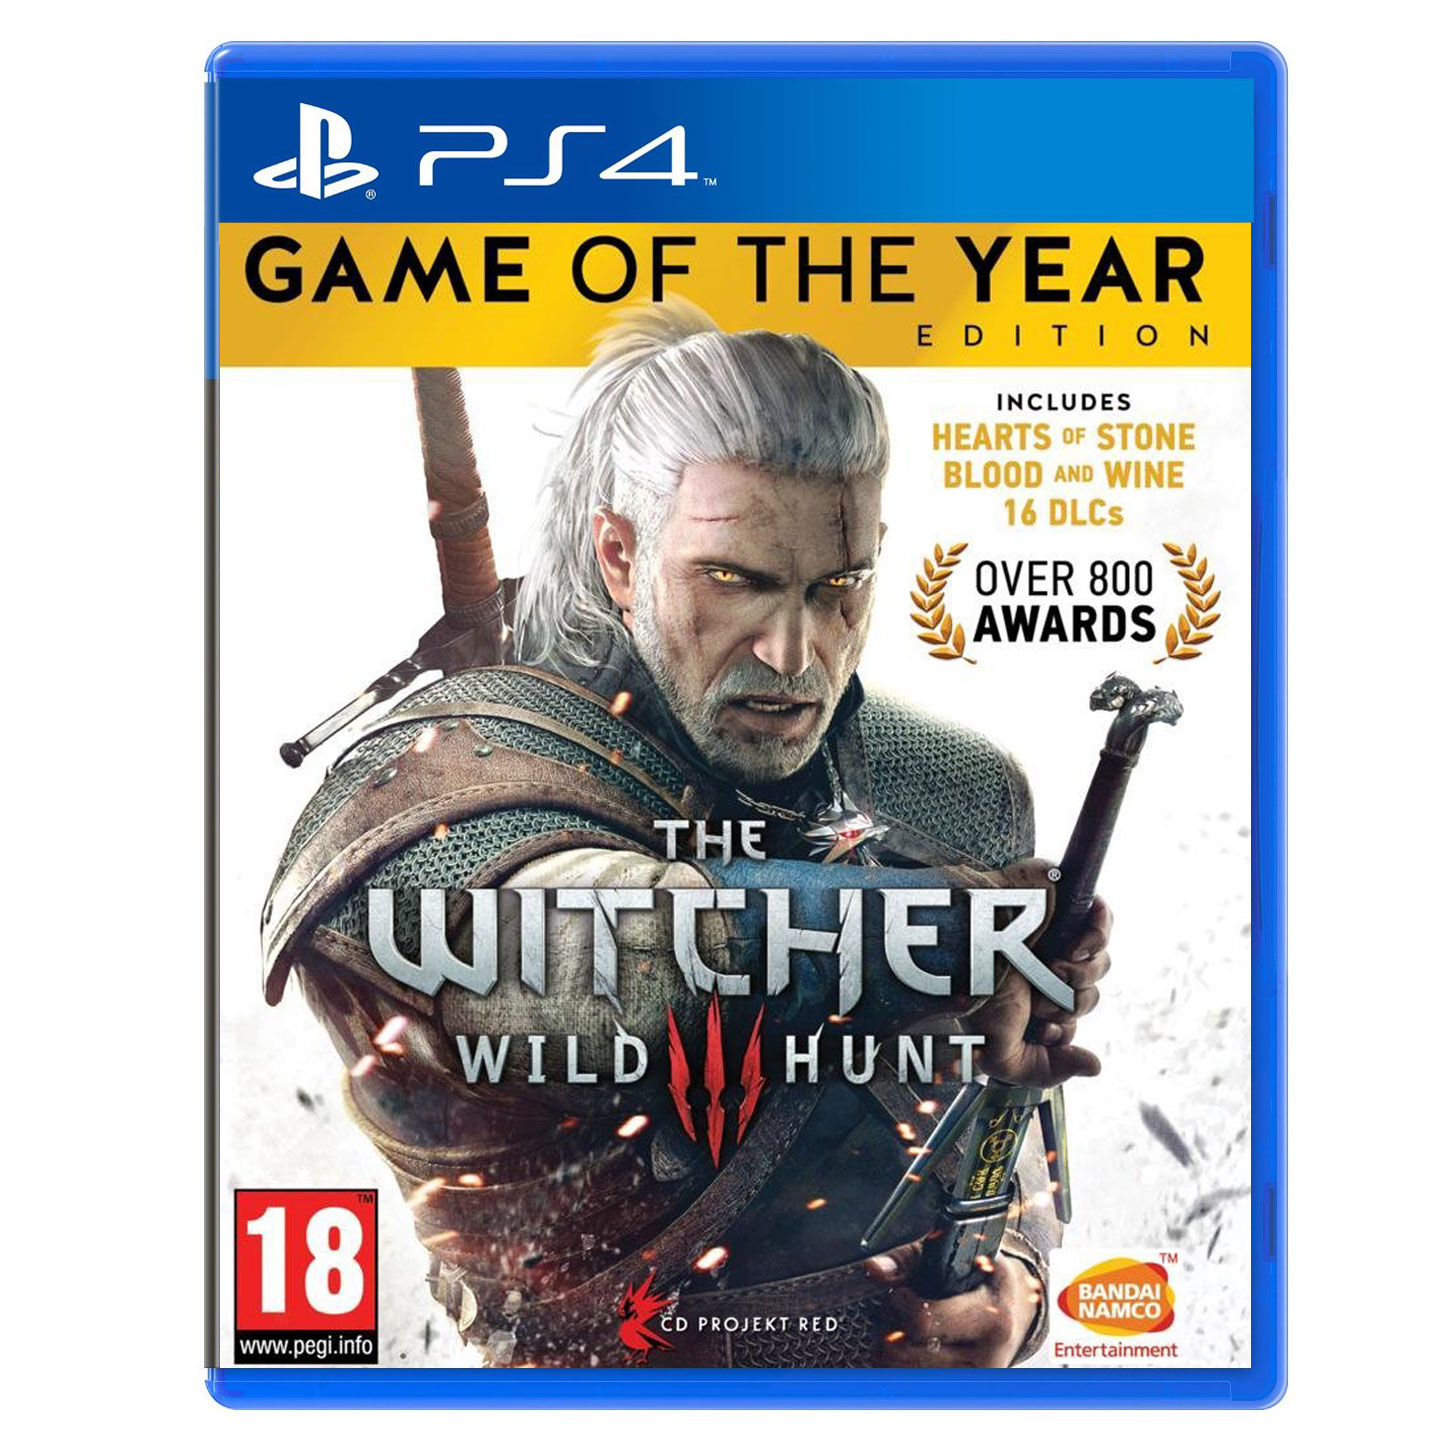 Jeux PS4 The Witcher III : Wild Hunt - Game Of The Year Edition (PS4) The Witcher III : Wild Hunt - Game Of The Year Edition (PS4)